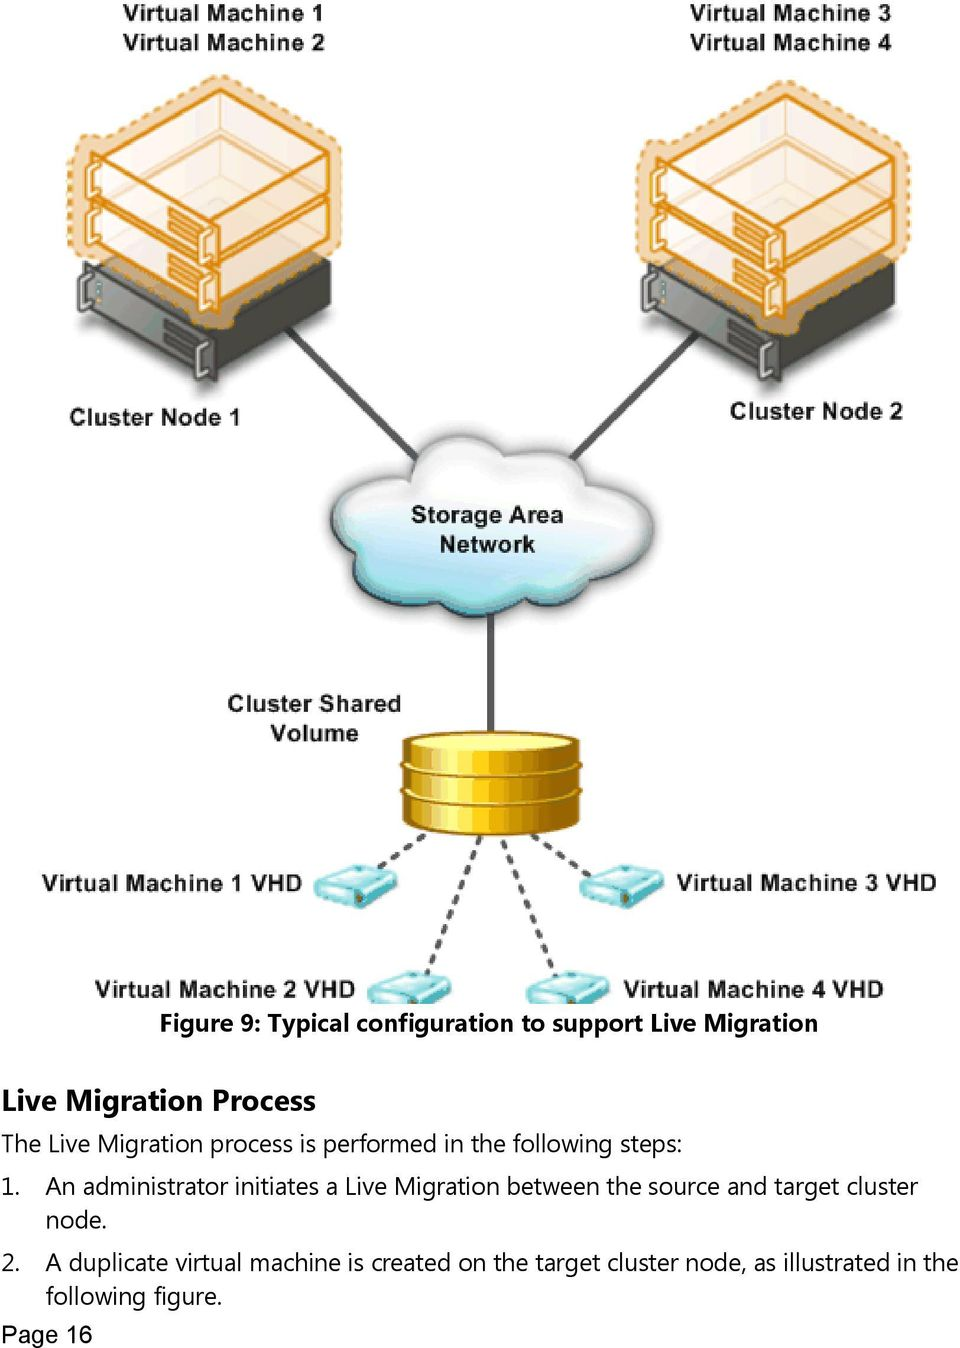 An administrator initiates a Live Migration between the source and target cluster node.